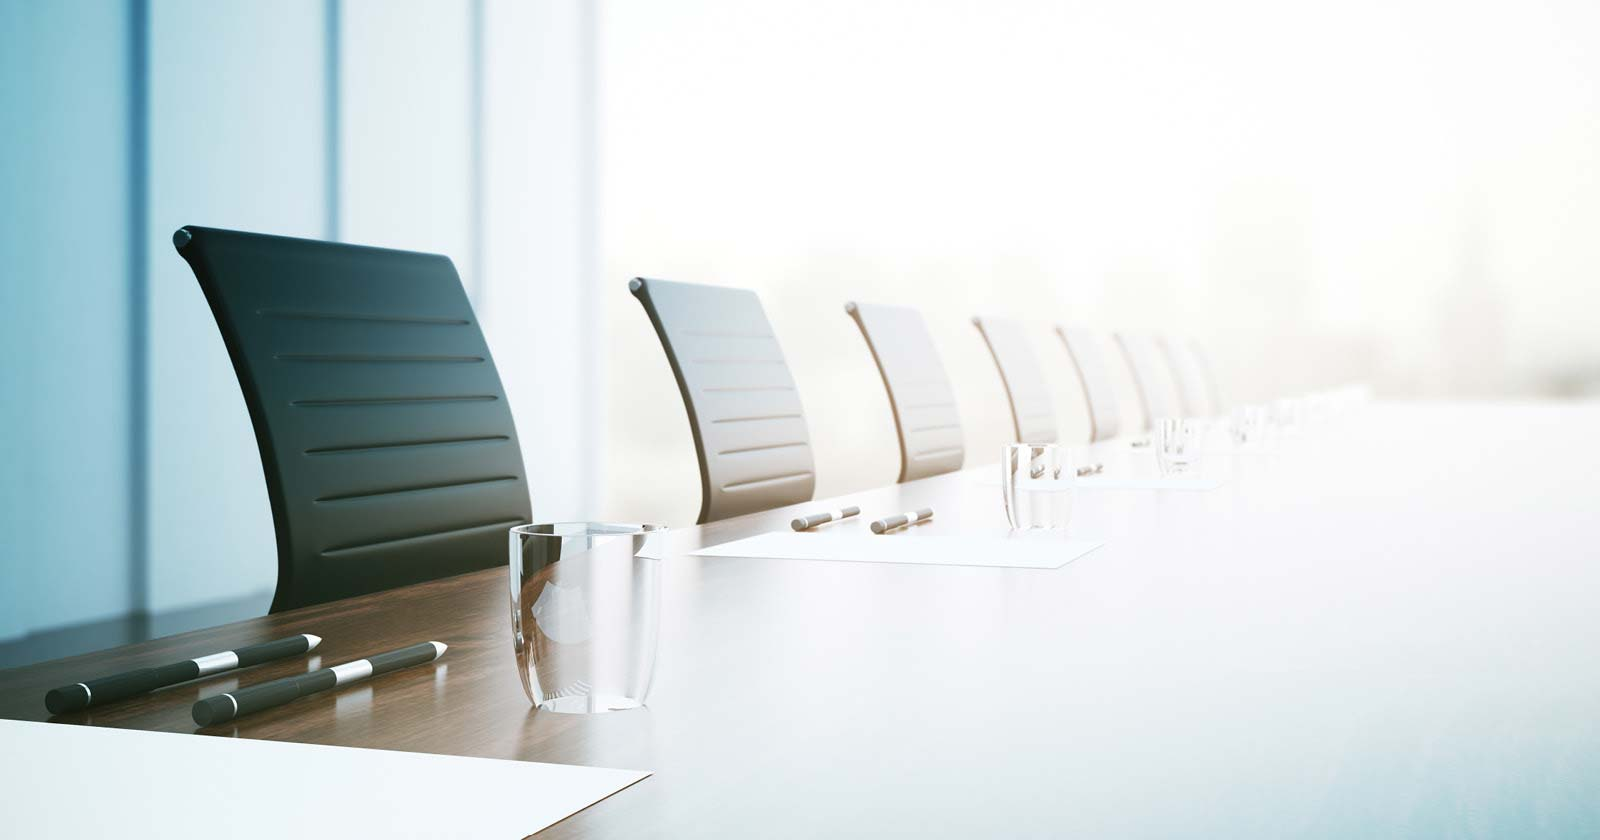 Why Does Even a Small, Private Company Need a Board?